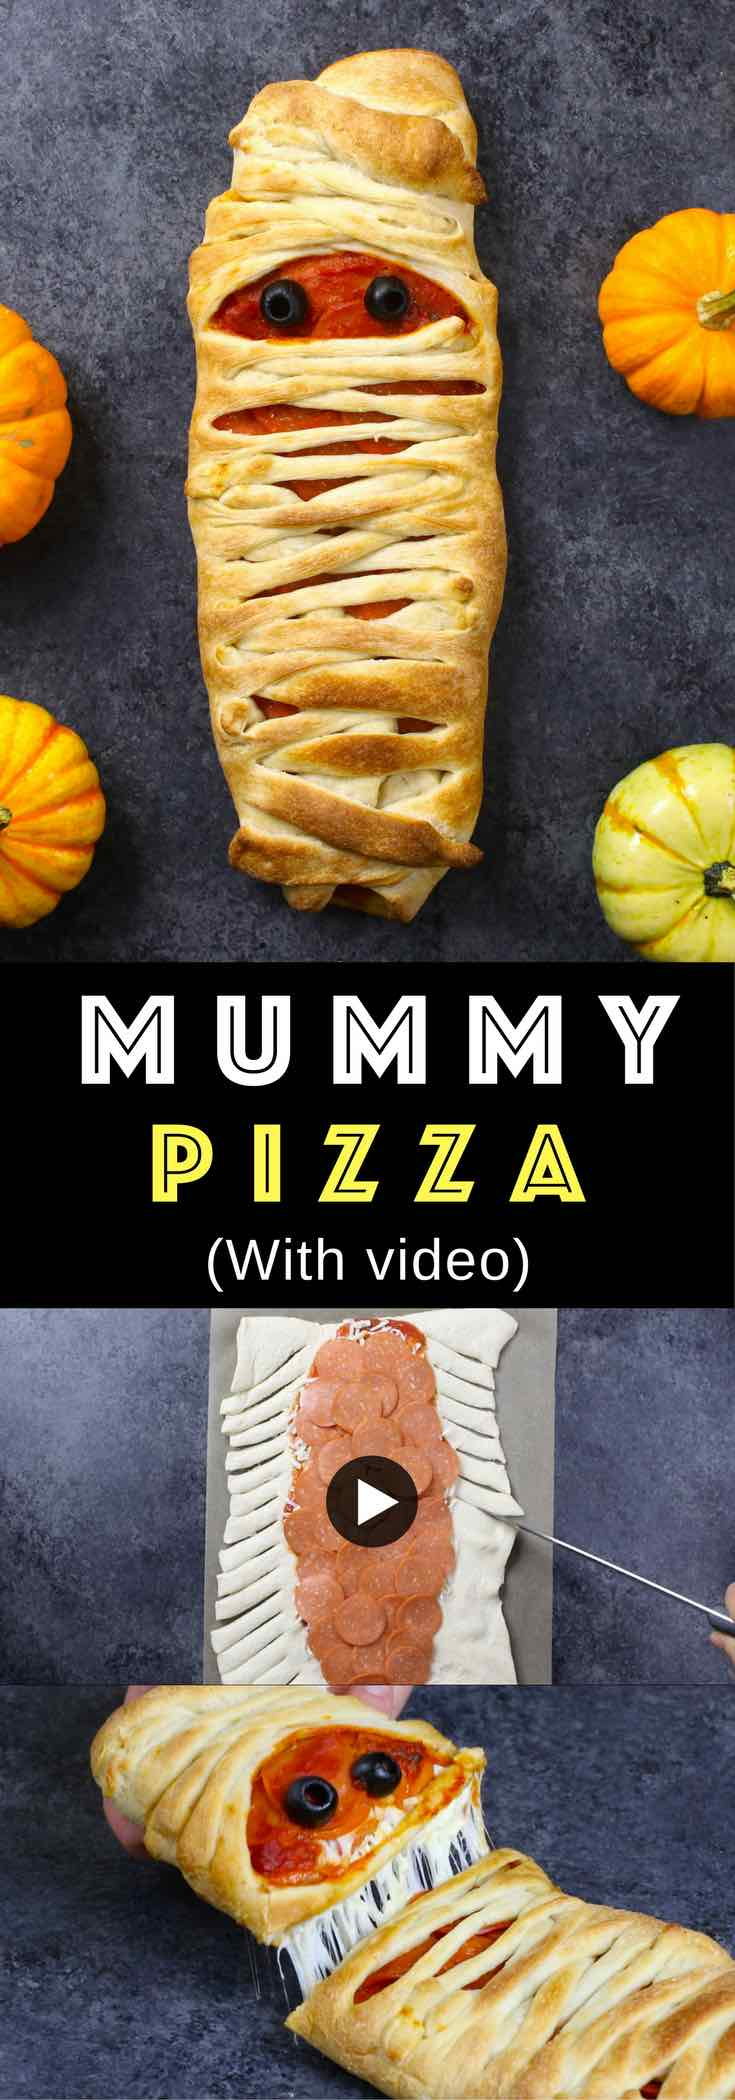 This Mummy Pizza will add some spooky fun to your Halloween celebrations! It's easy to make with a refrigerated pizza dough, pizza sauce, cheese, pepperoni and an olive for eyes. You can serve it as either an appetizer or light dinner before trick-or-treating! #mummypizza